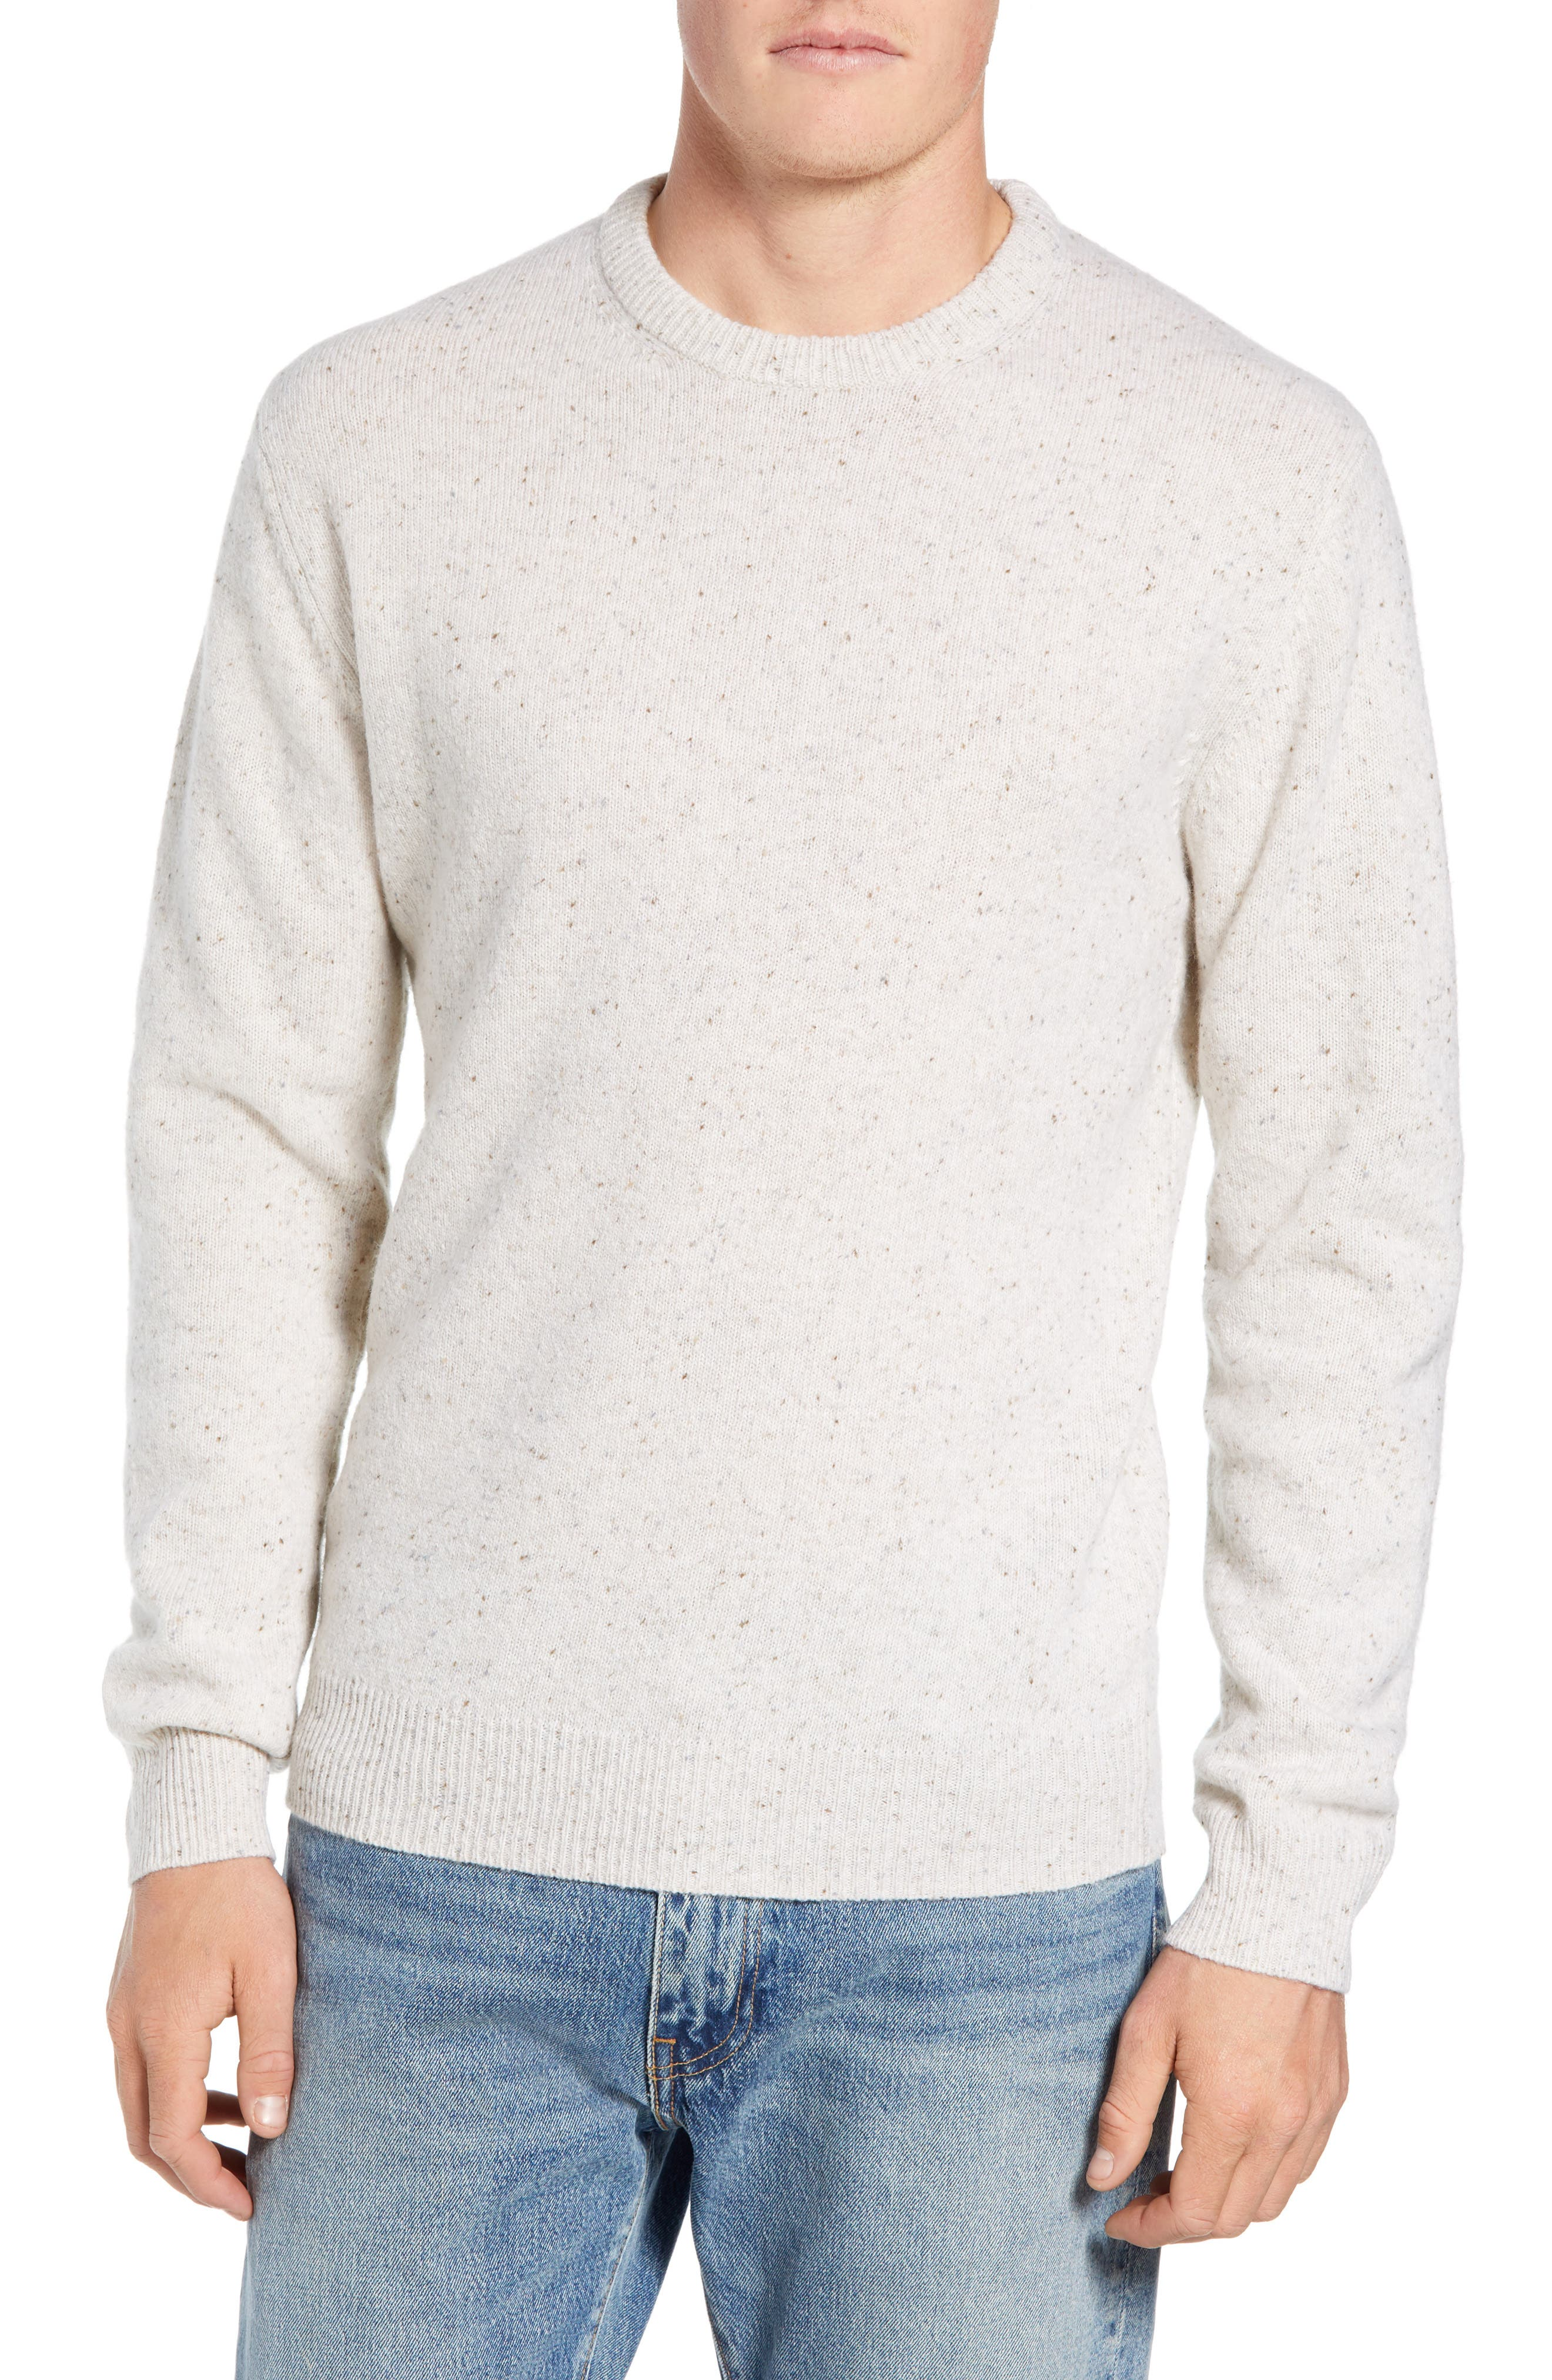 French Connection Donegal Sweater, Grey